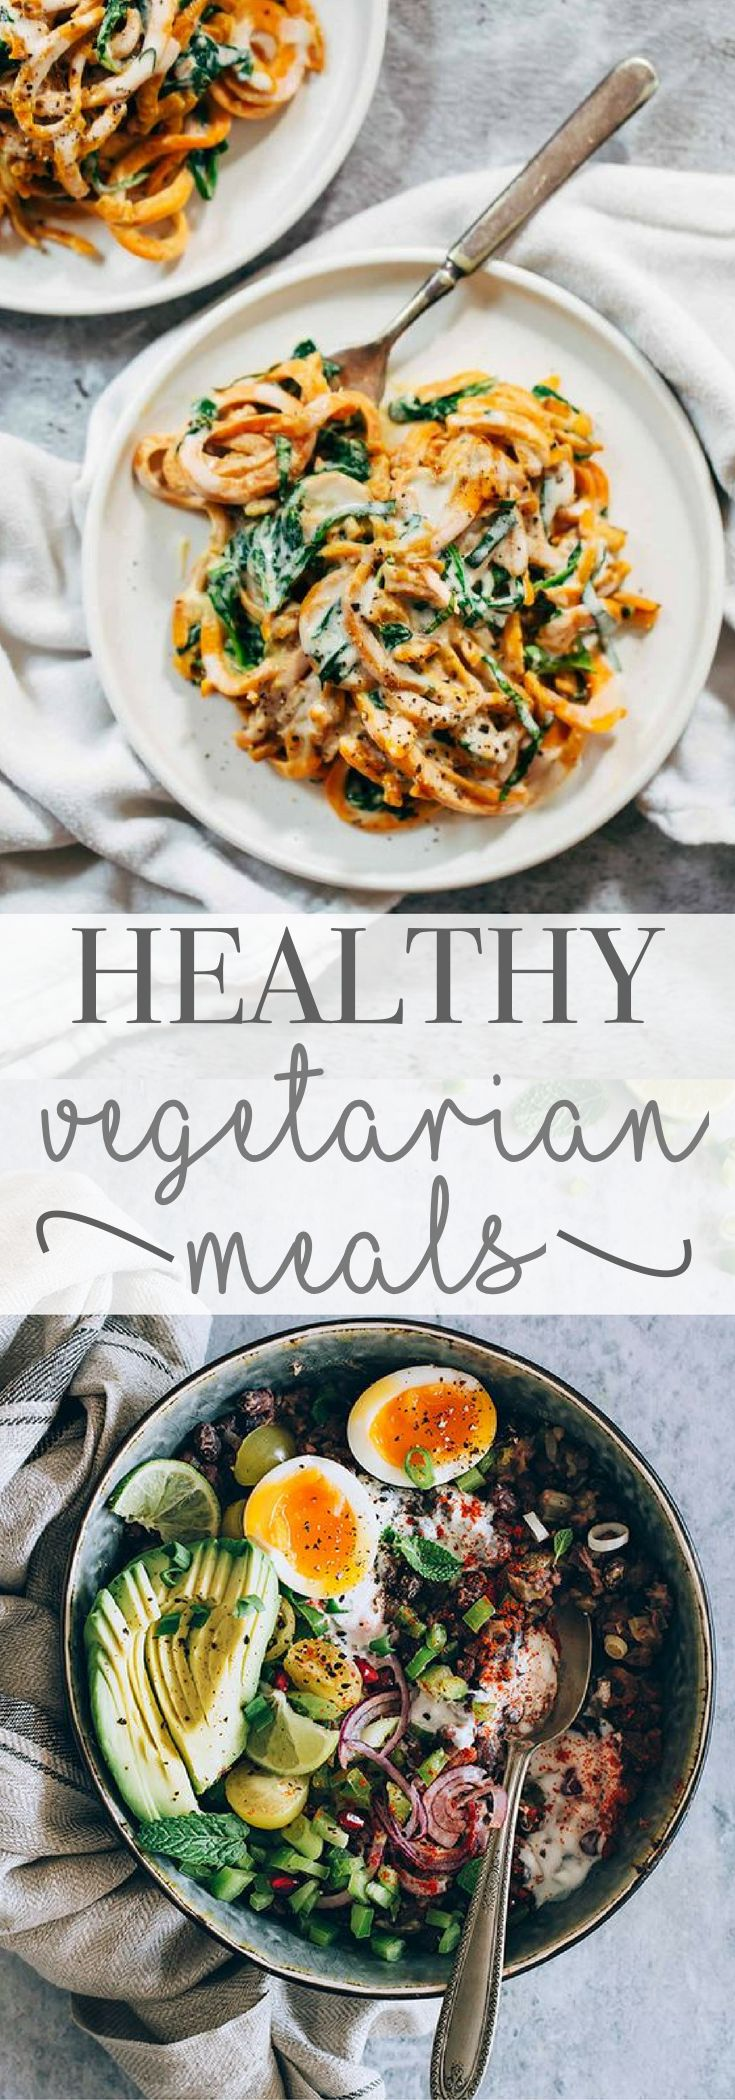 21 Incredible Healthy Vegetarian Meals That Everyone Will Love